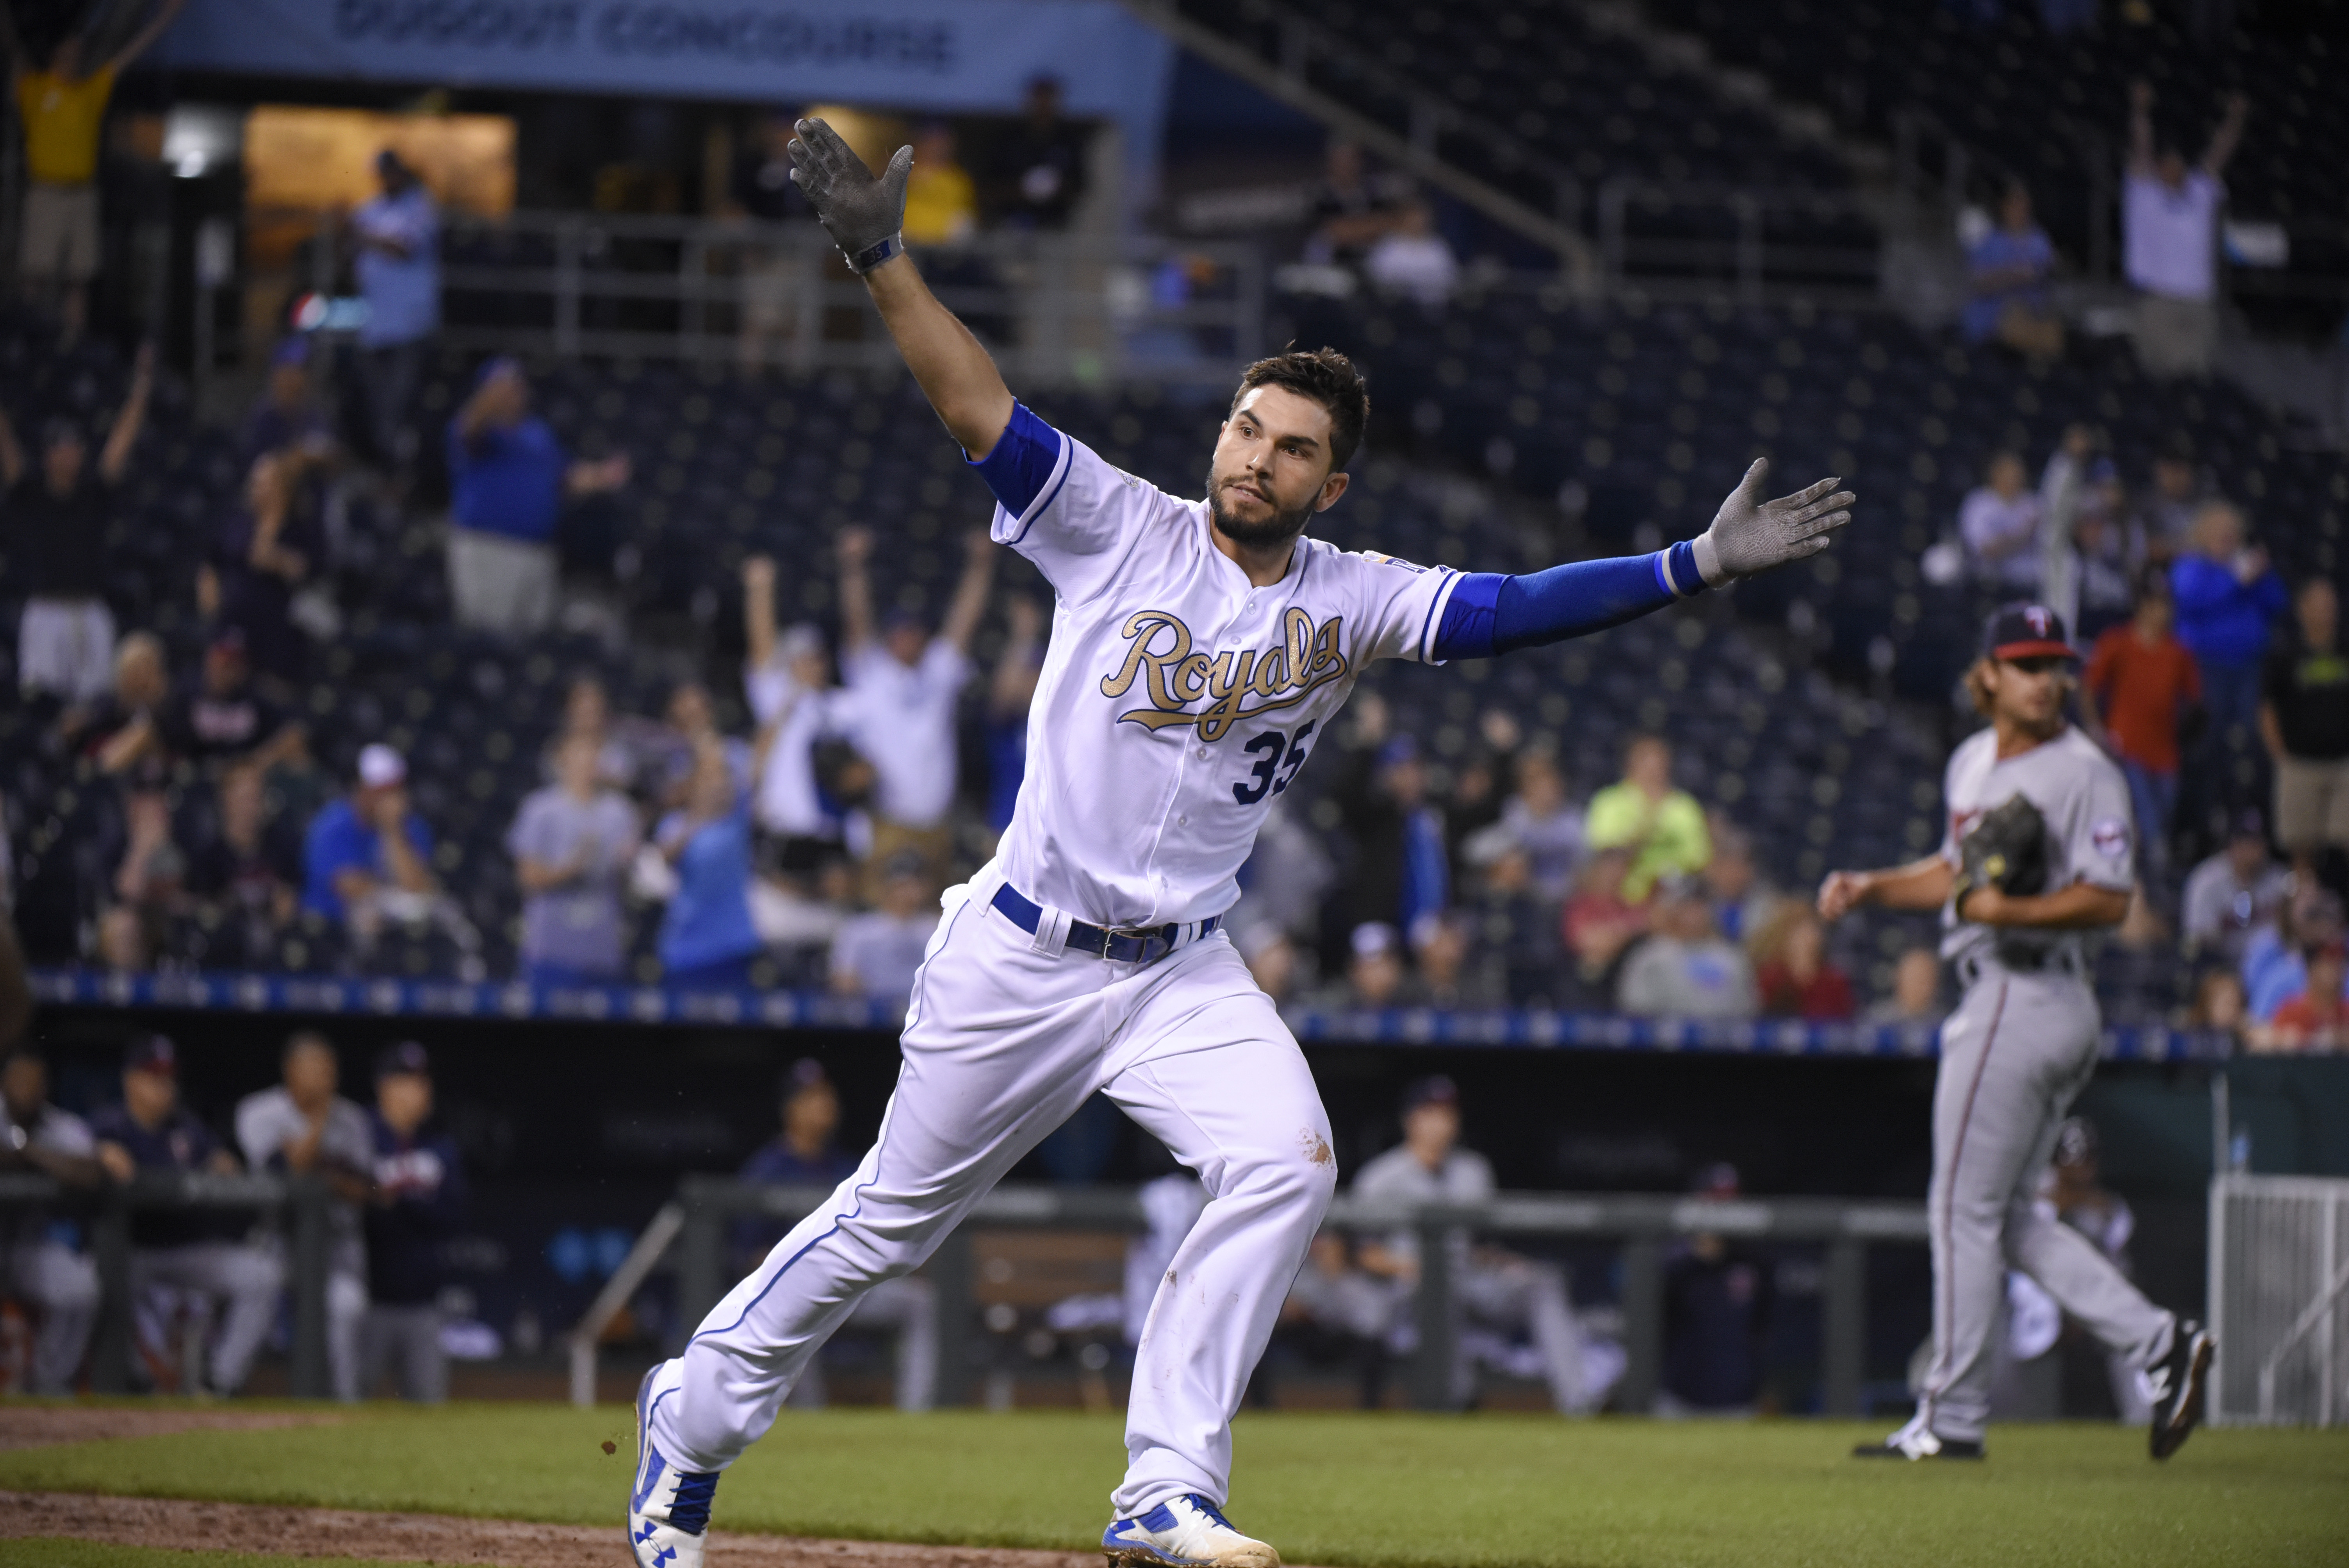 single women in hosmer Hosmer then hit a drive over the and chase headley and carlos asuaje contributed rbi singles in a new study found the majority of dispensaries advise pregnant.